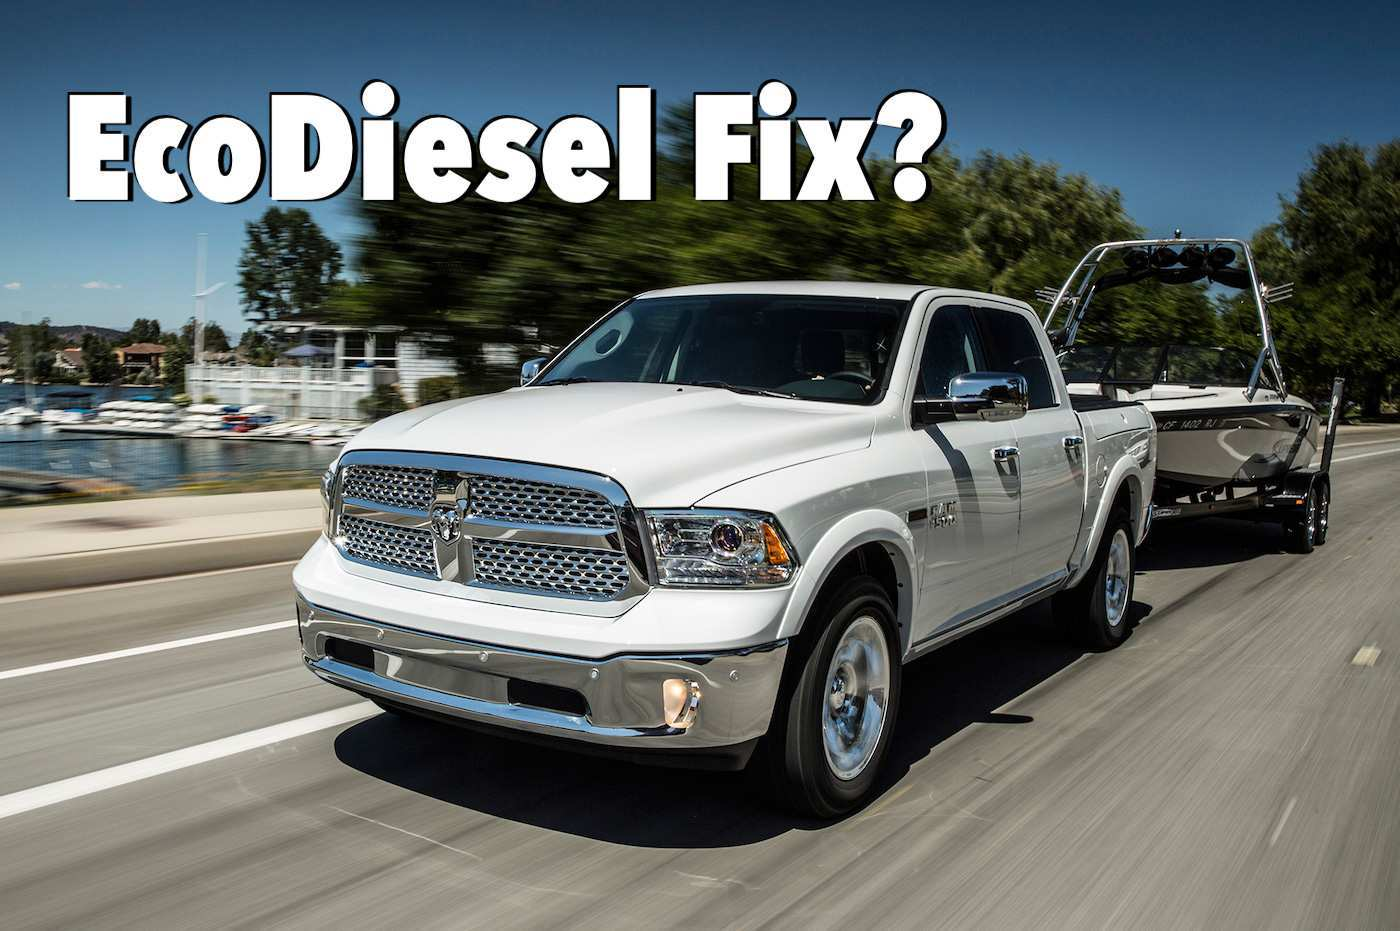 14 New 2019 Jeep Ecodiesel Price And Review